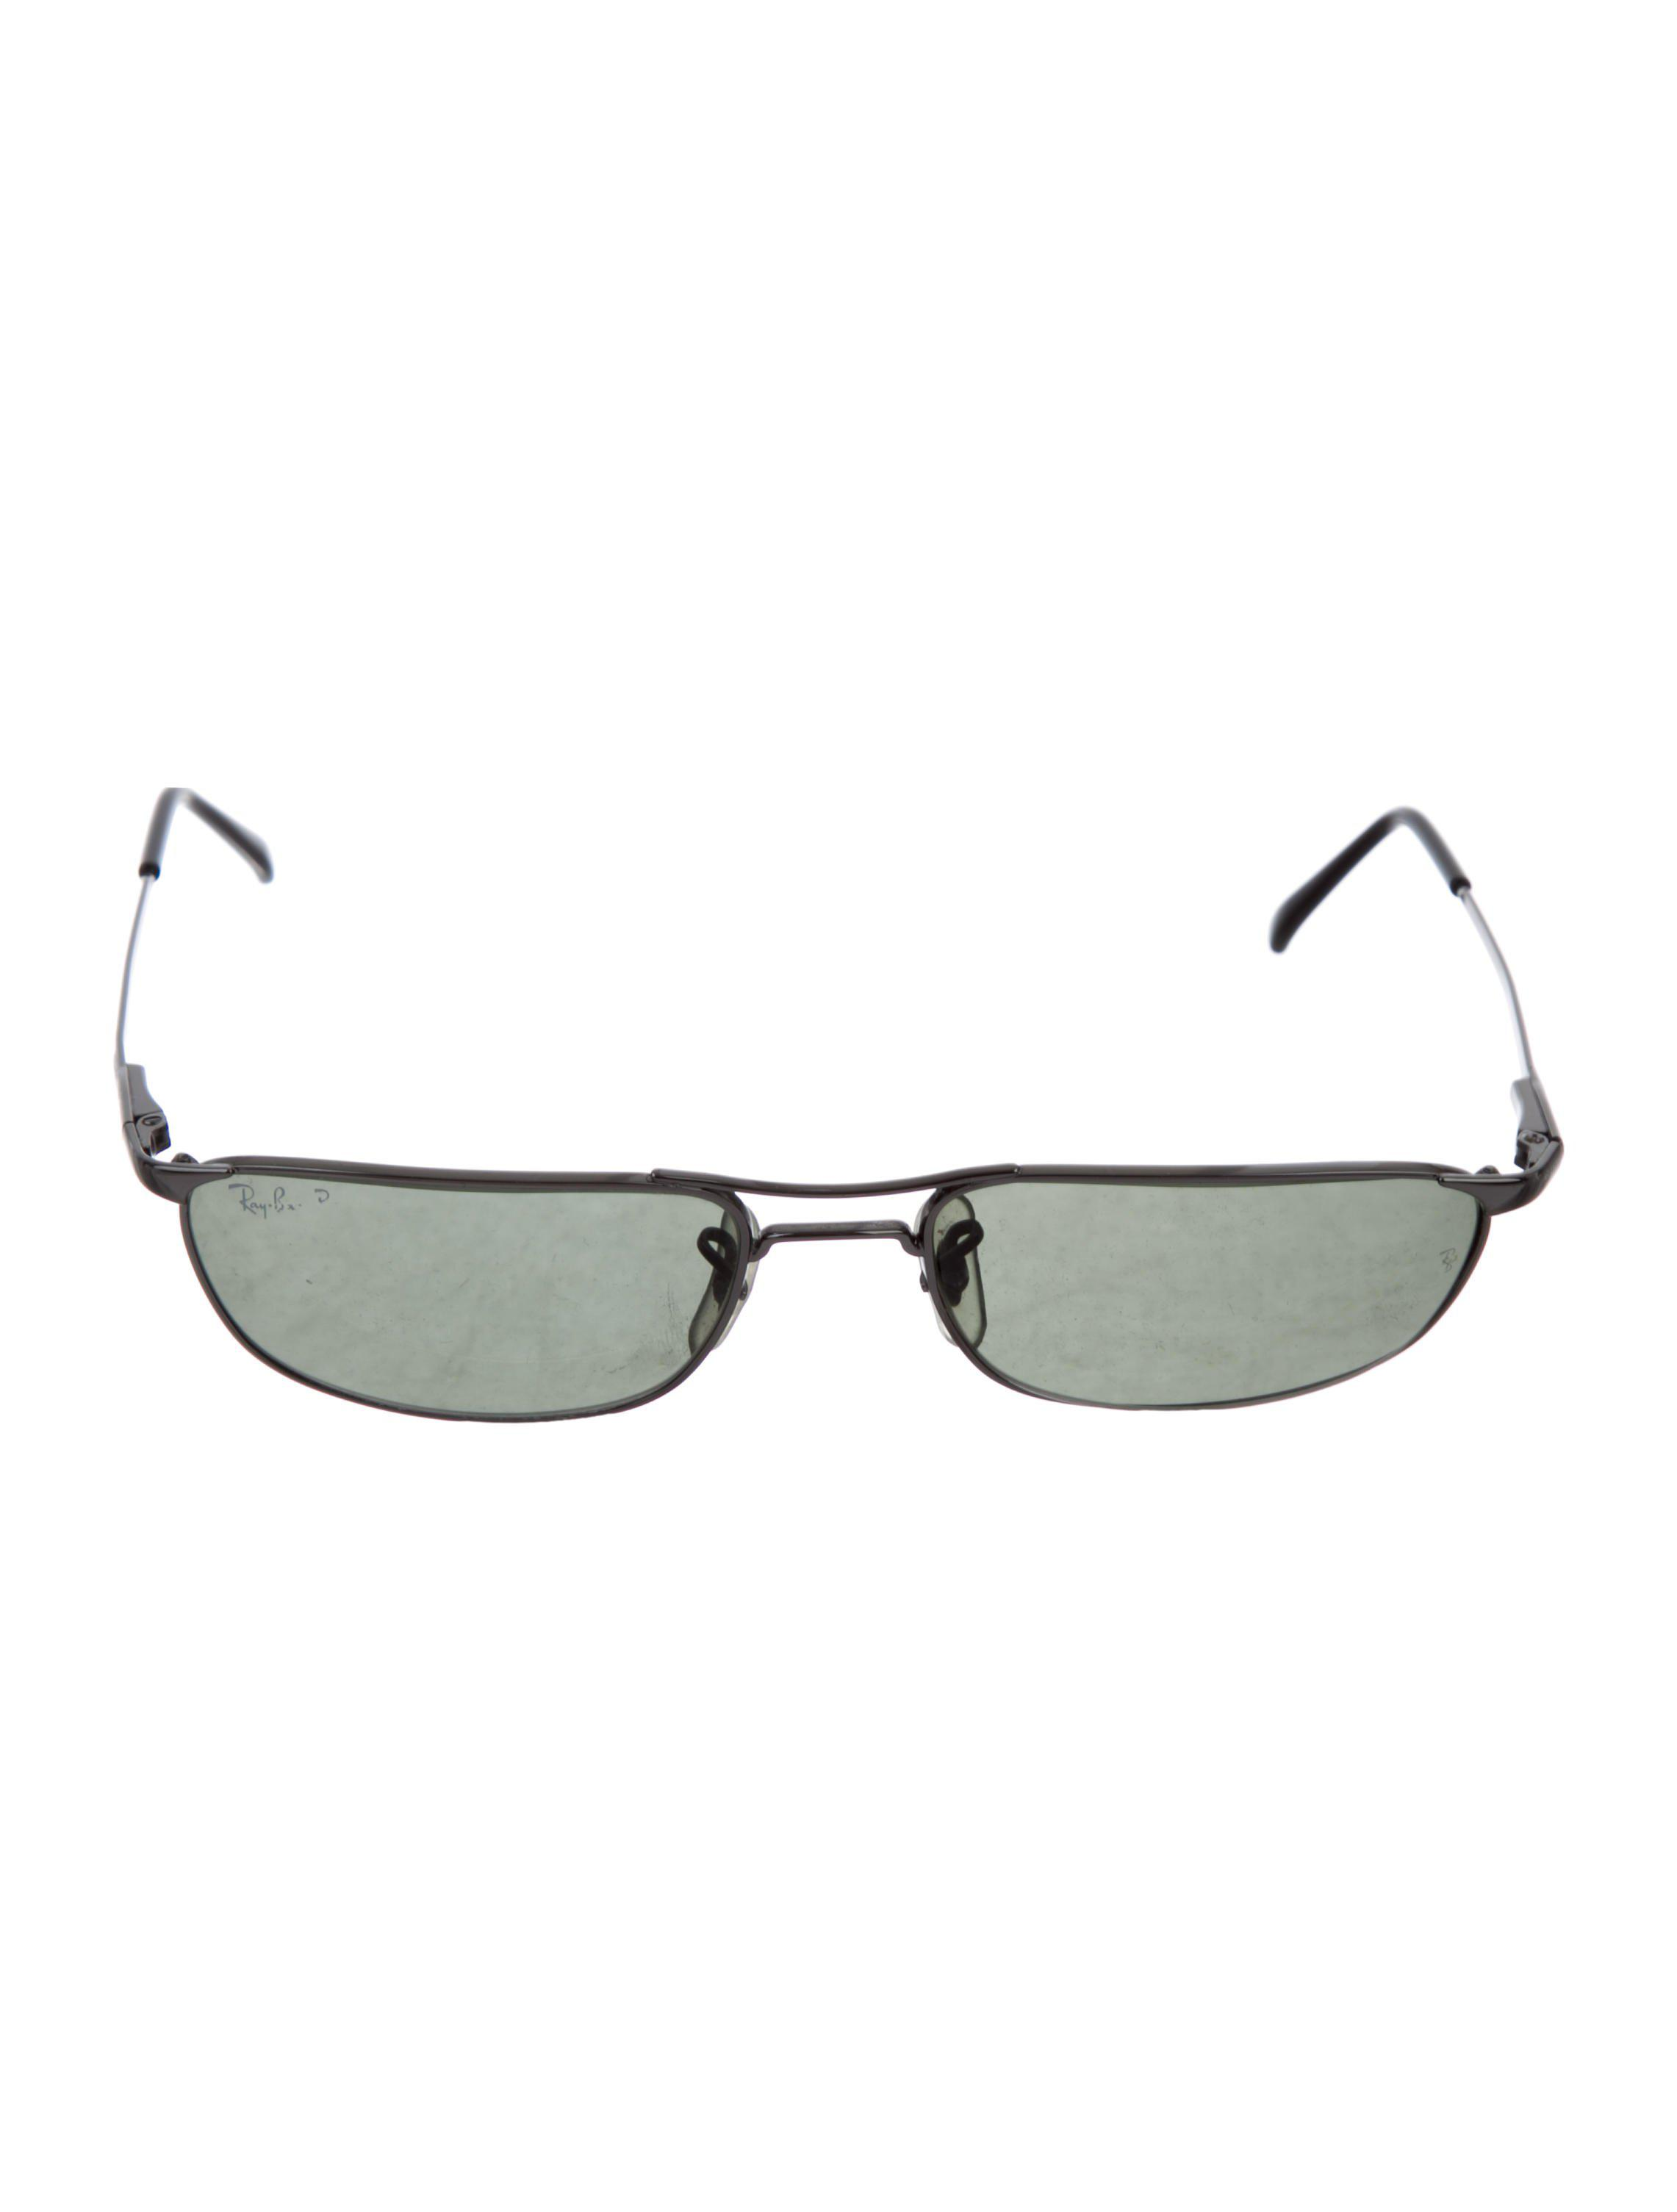 1c5c25a0ec ... shopping ray ban. womens natural polarized rectangular sunglasses  silver 56477 37010